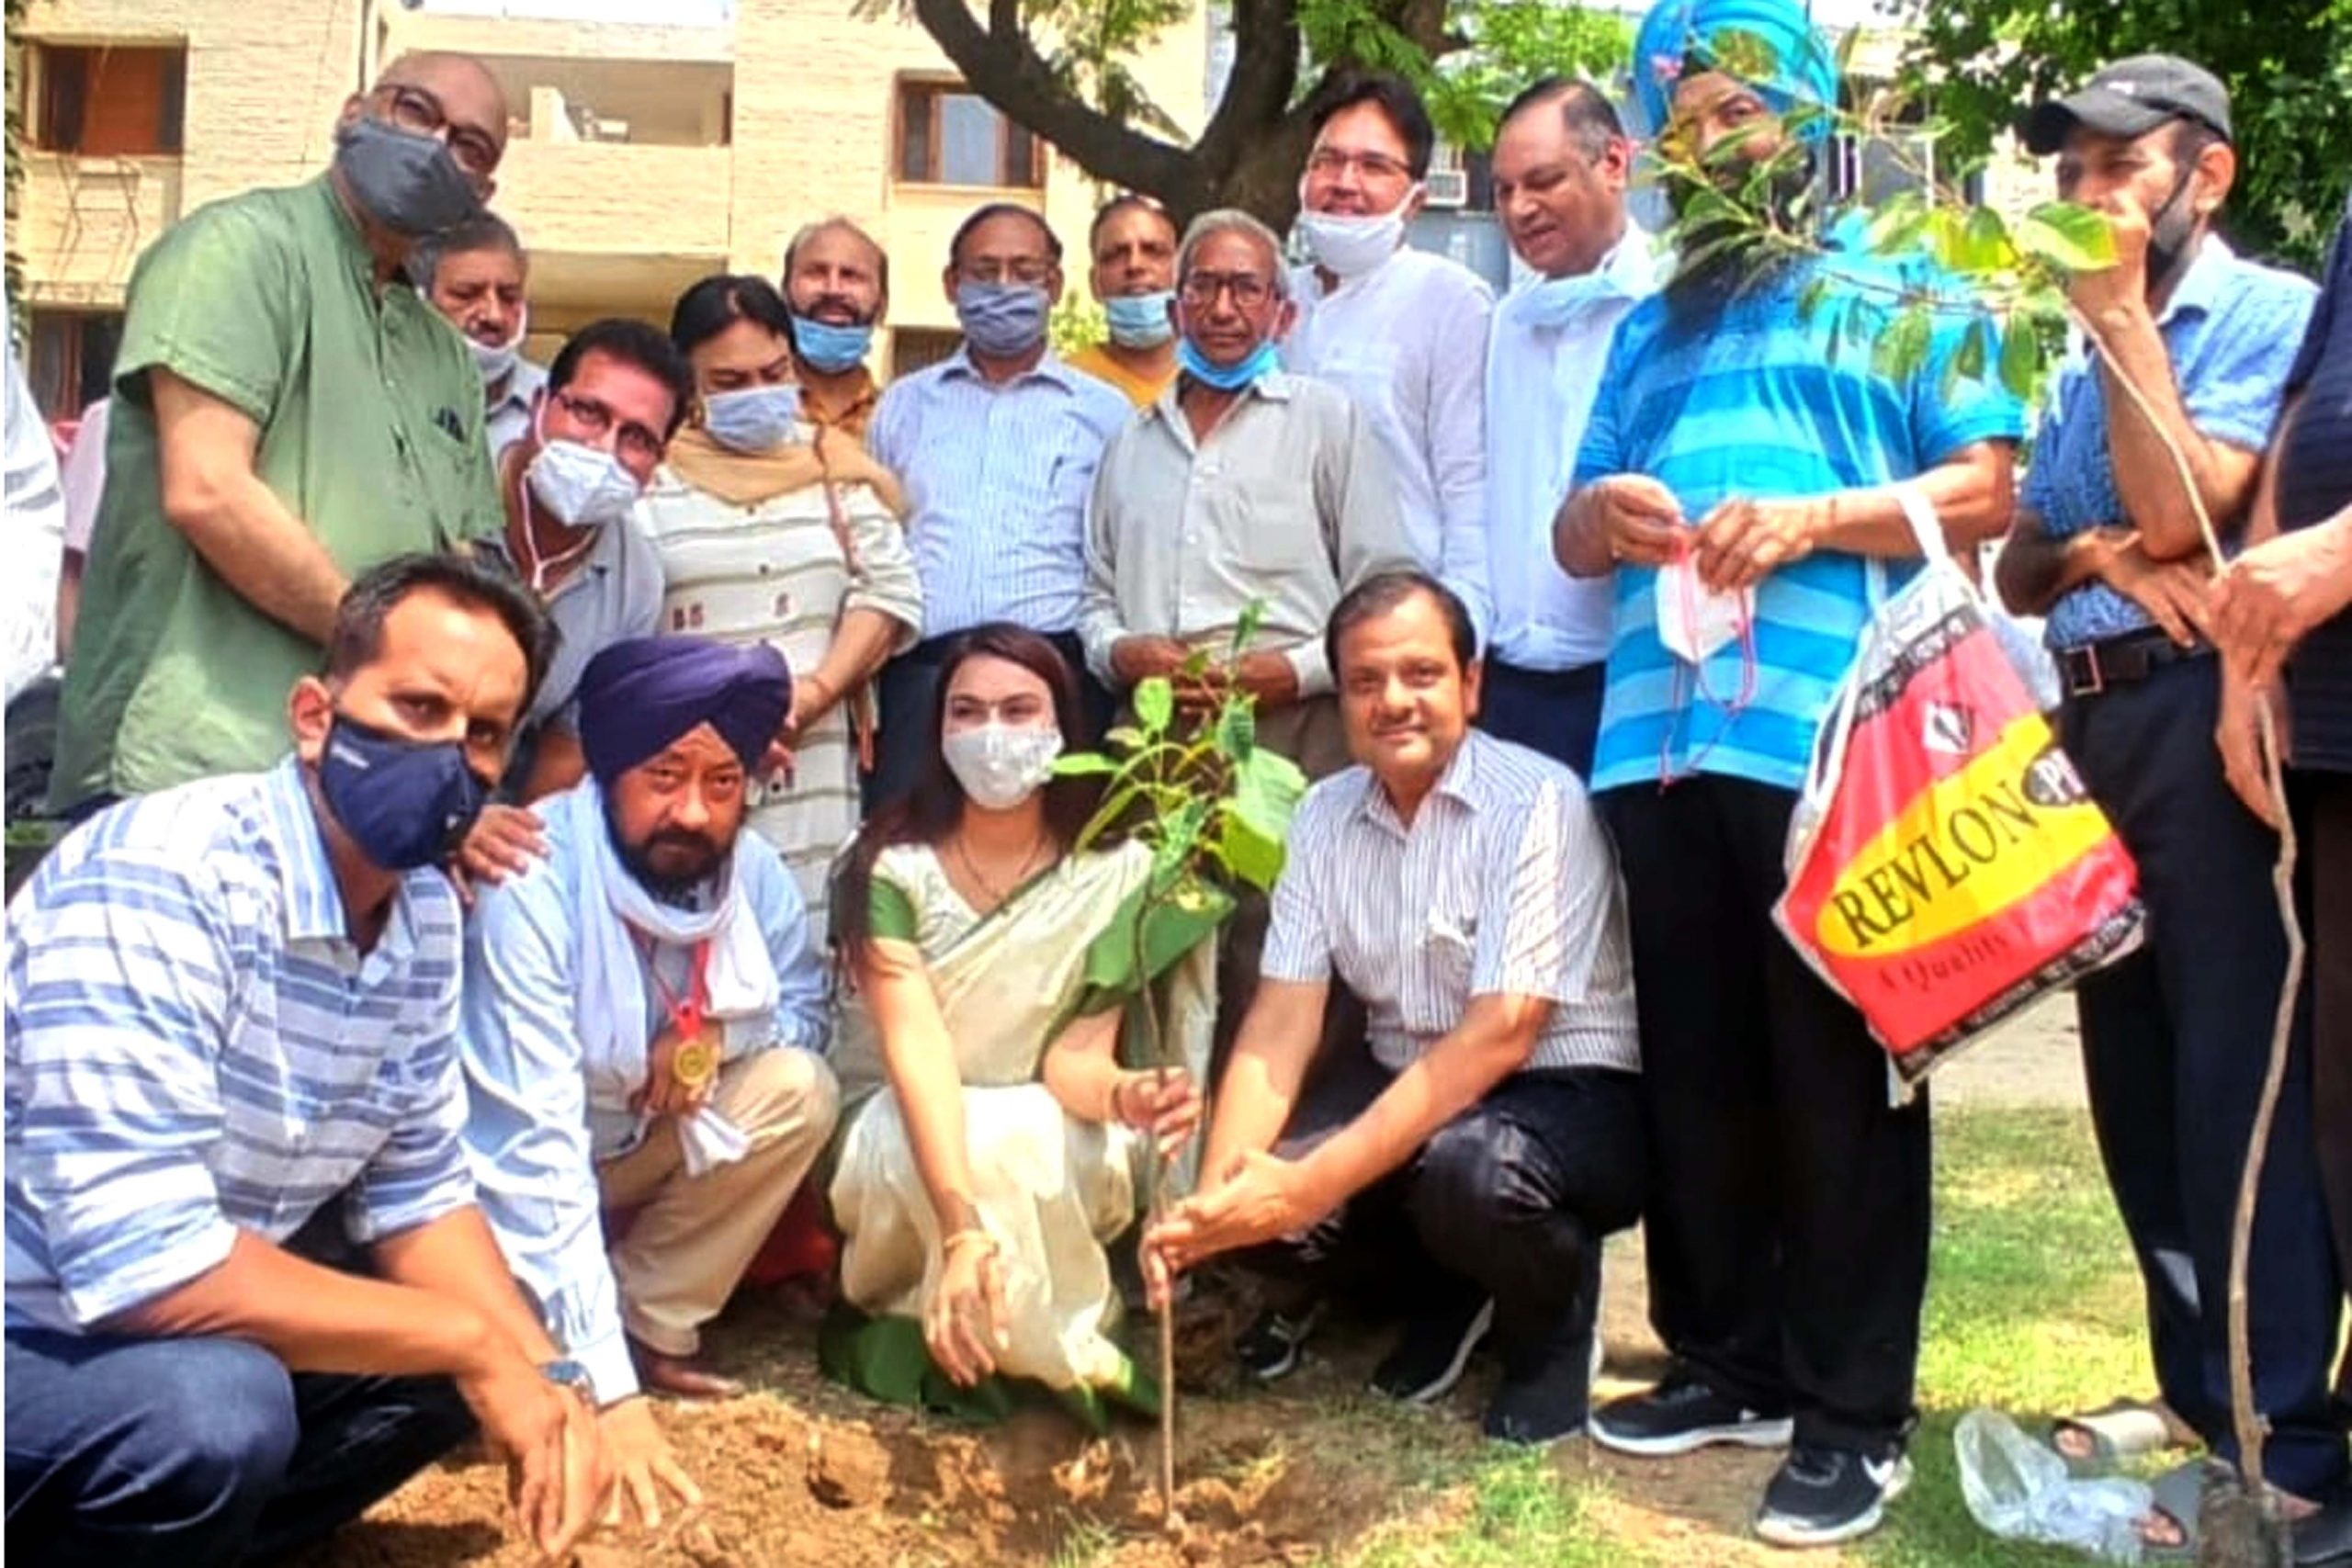 All the welfare bodies of Sector 38 West did plantation collectively planted many medicinal&fruitful&flowering plants